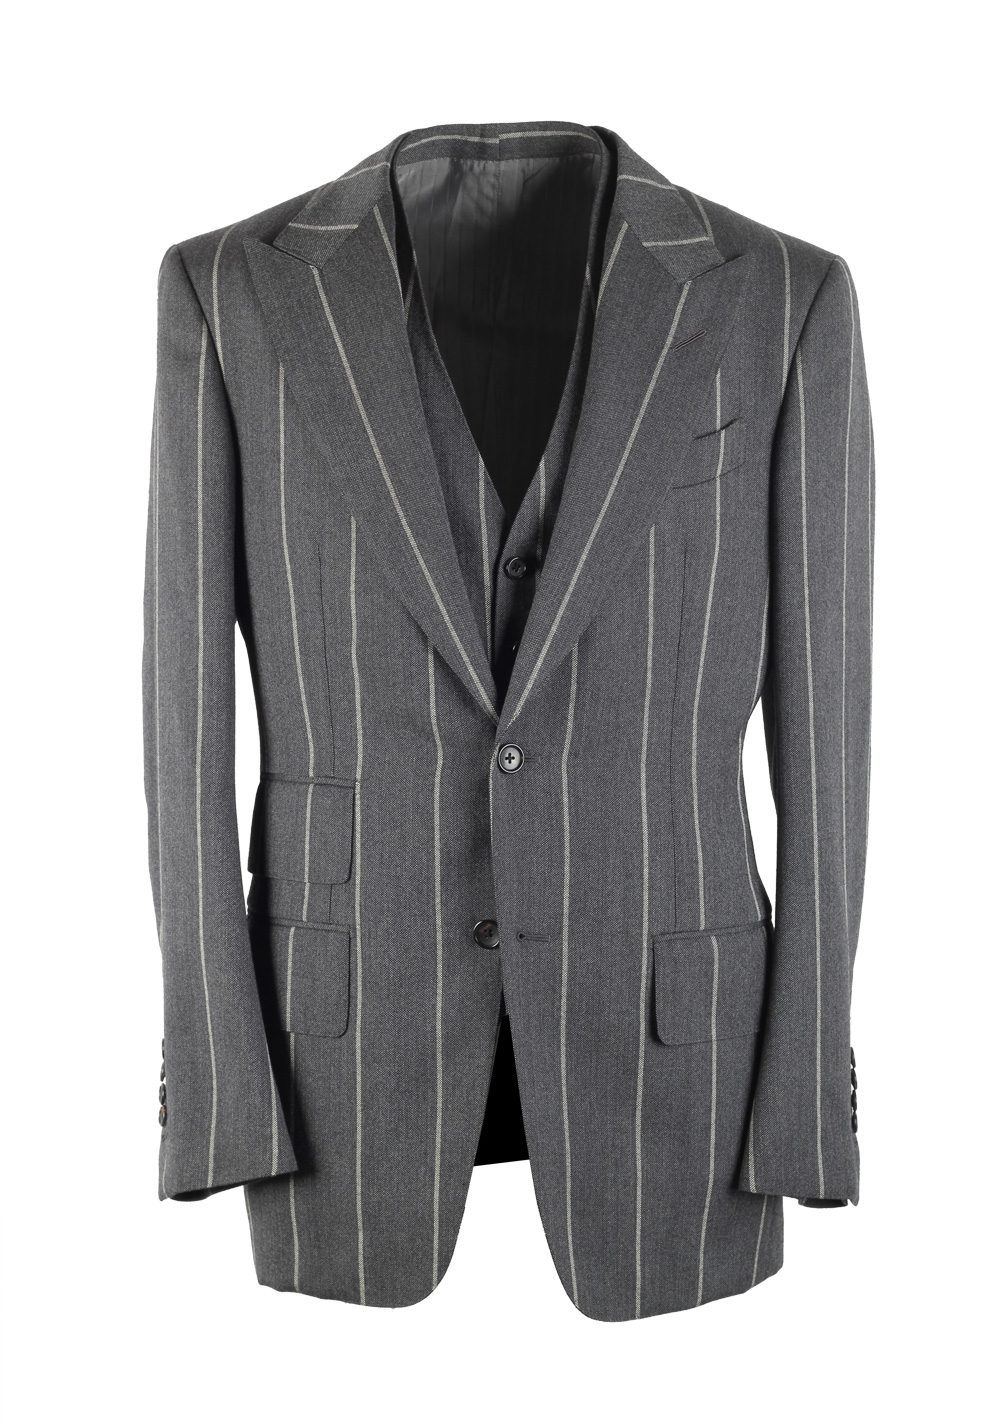 TOM FORD Spencer Striped Gray 3 Piece Suit Size 48 / 38R U.S. Wool Fit D | Costume Limité